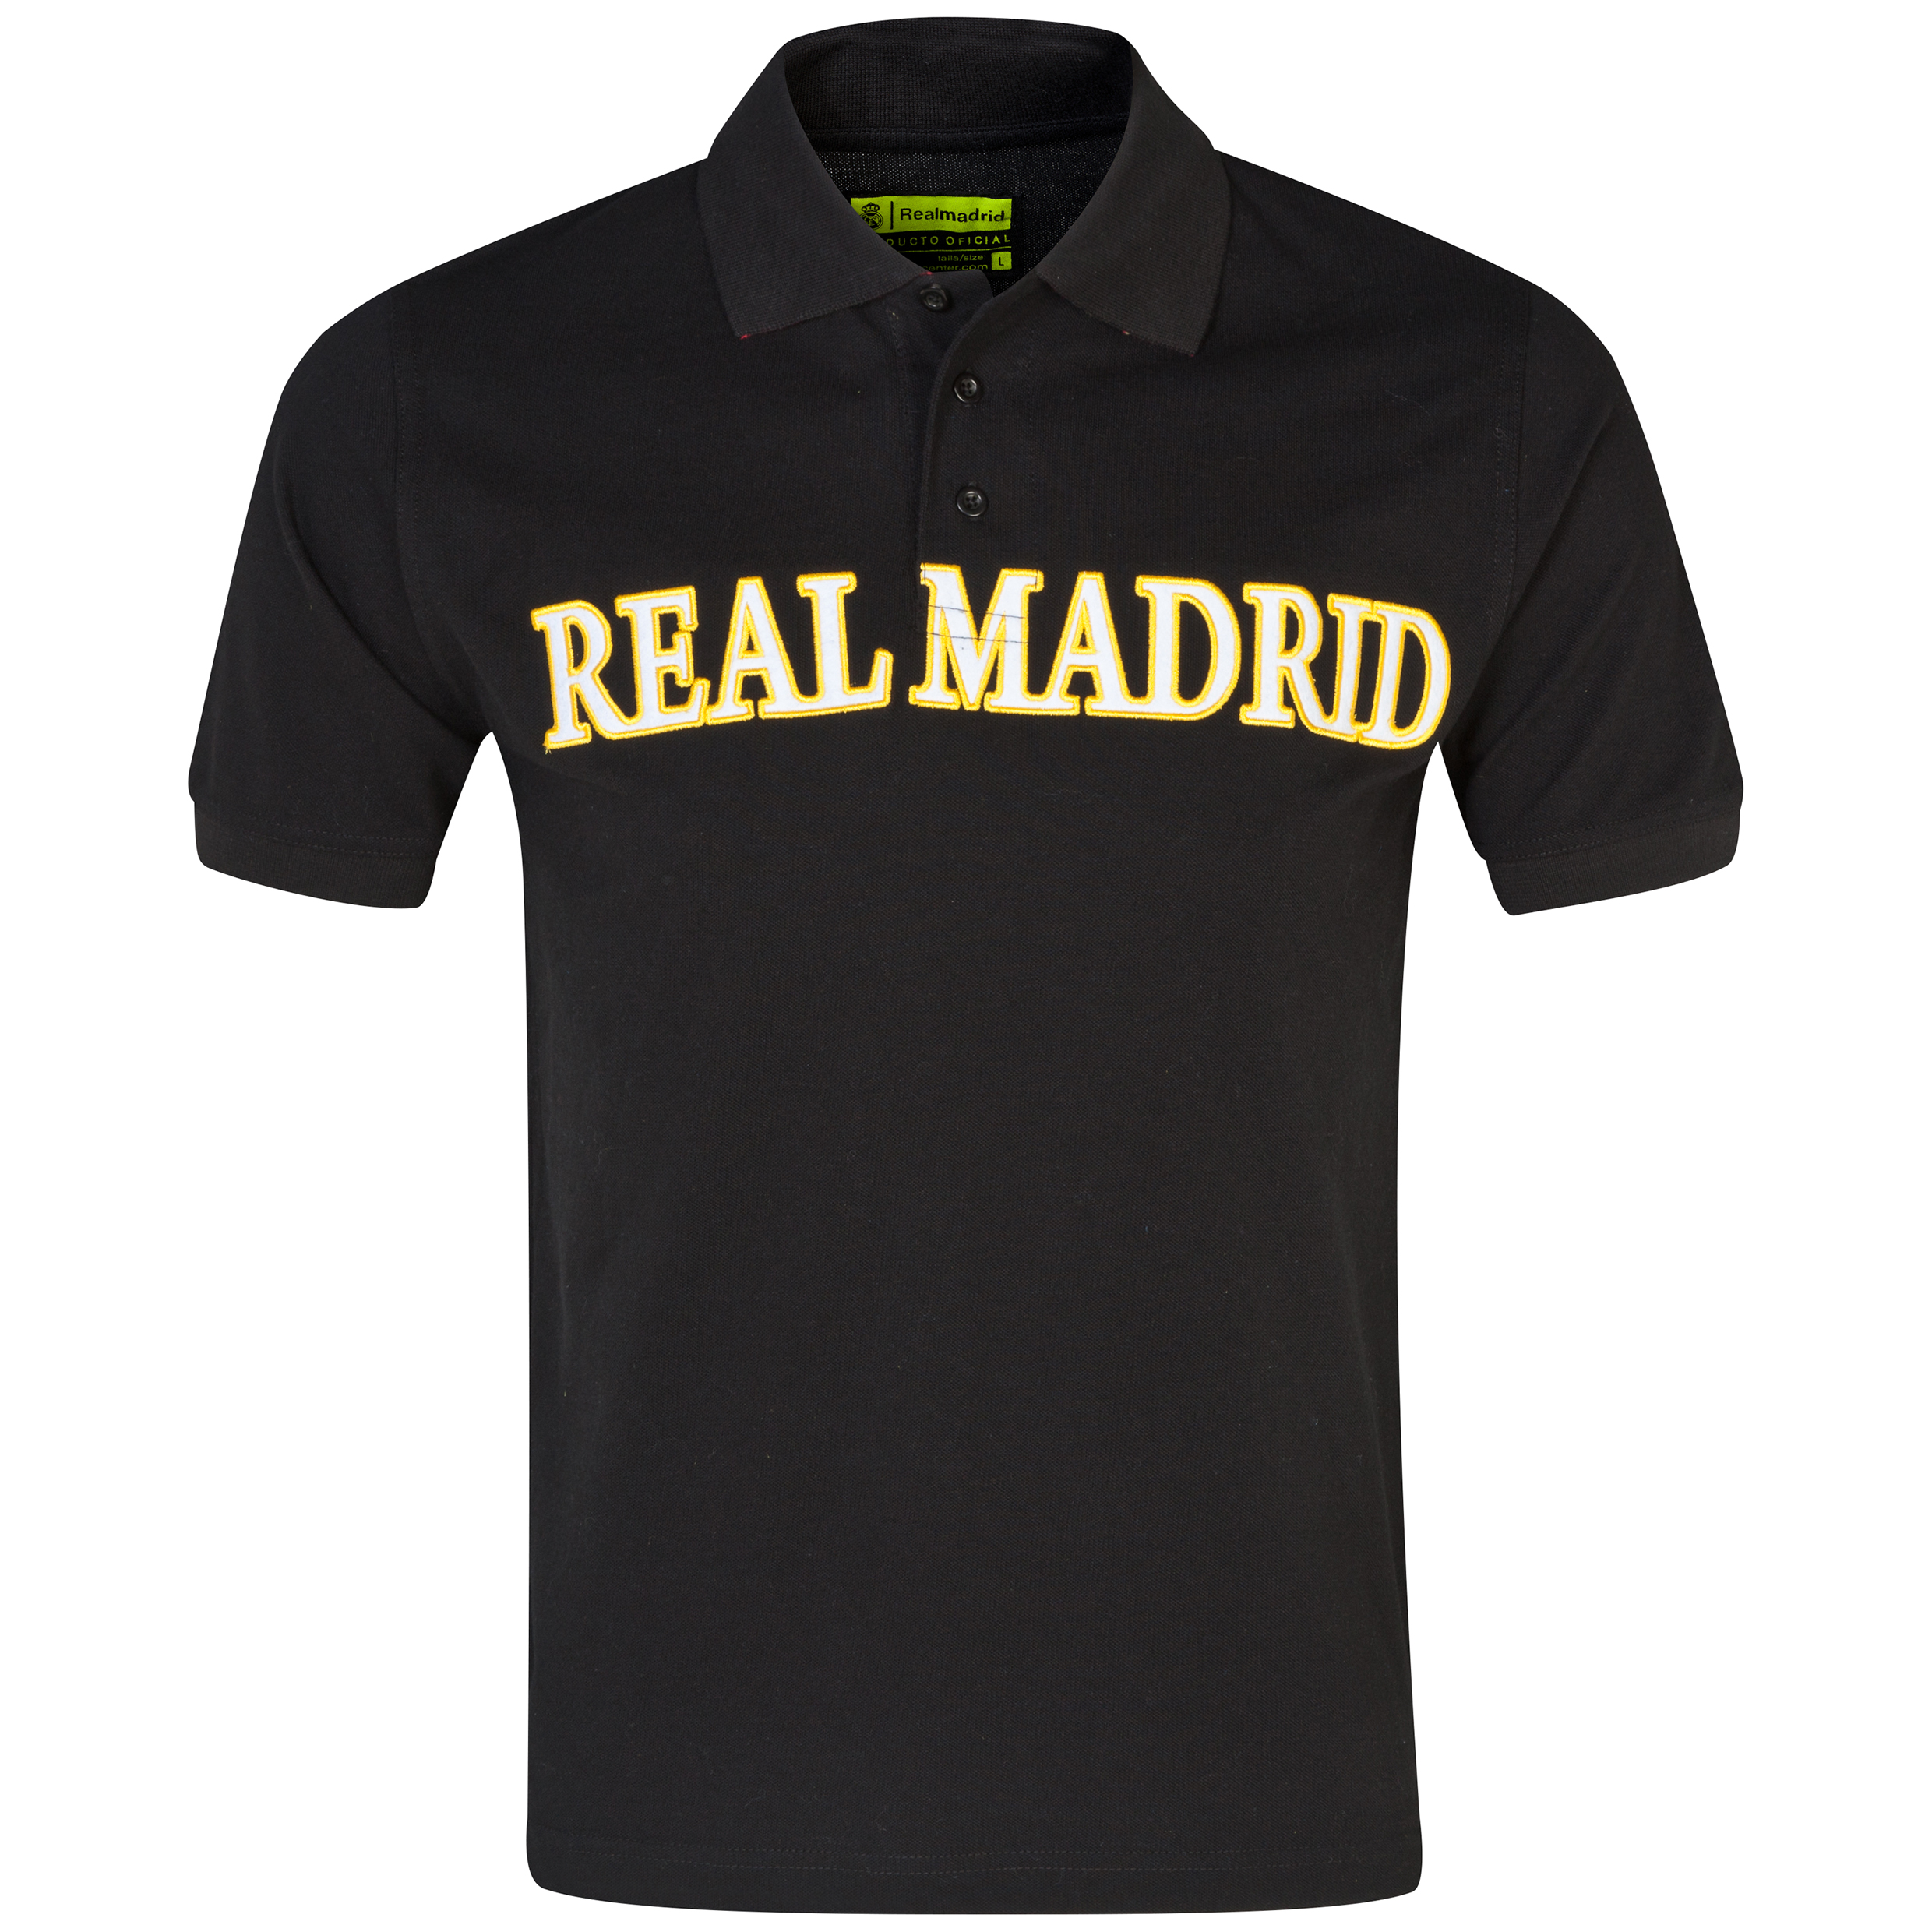 Real Madrid 1902 Polo Shirt - Mens Black